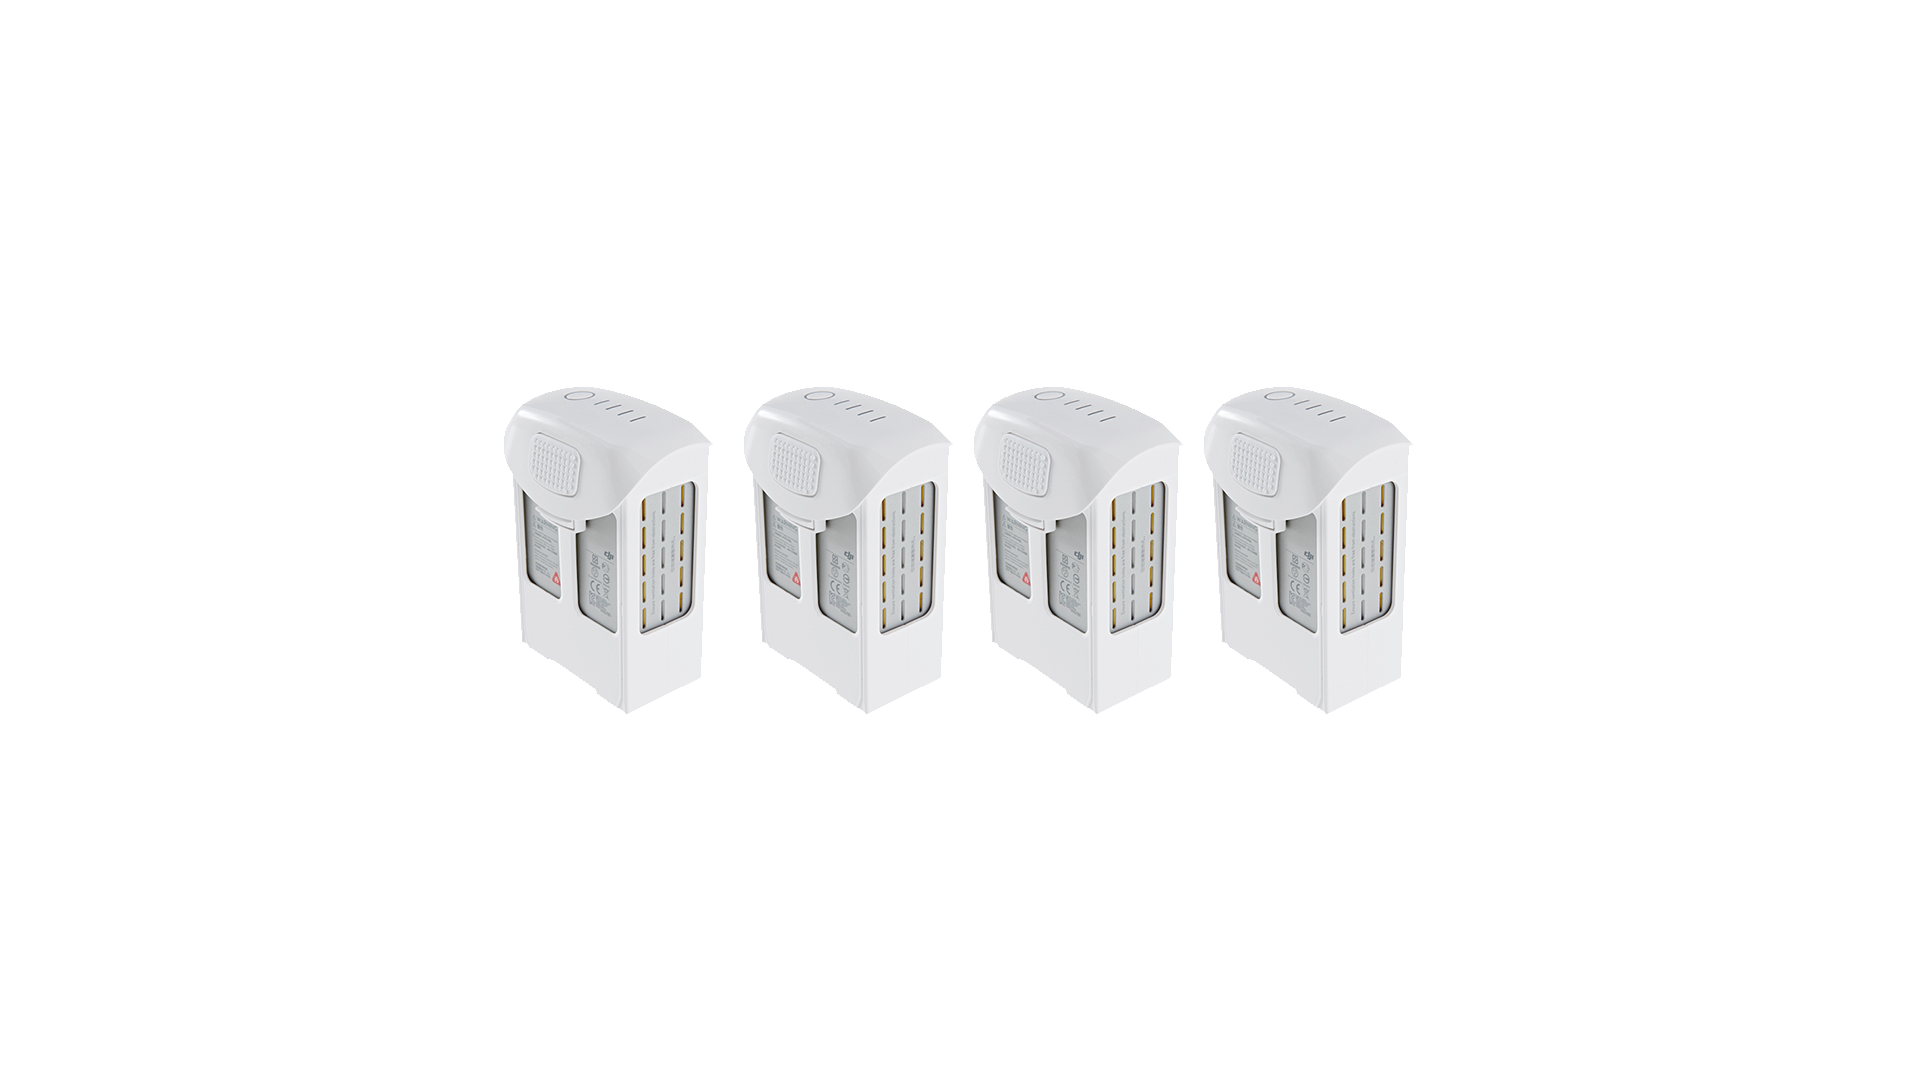 DJI Phantom 4 Battery Packs